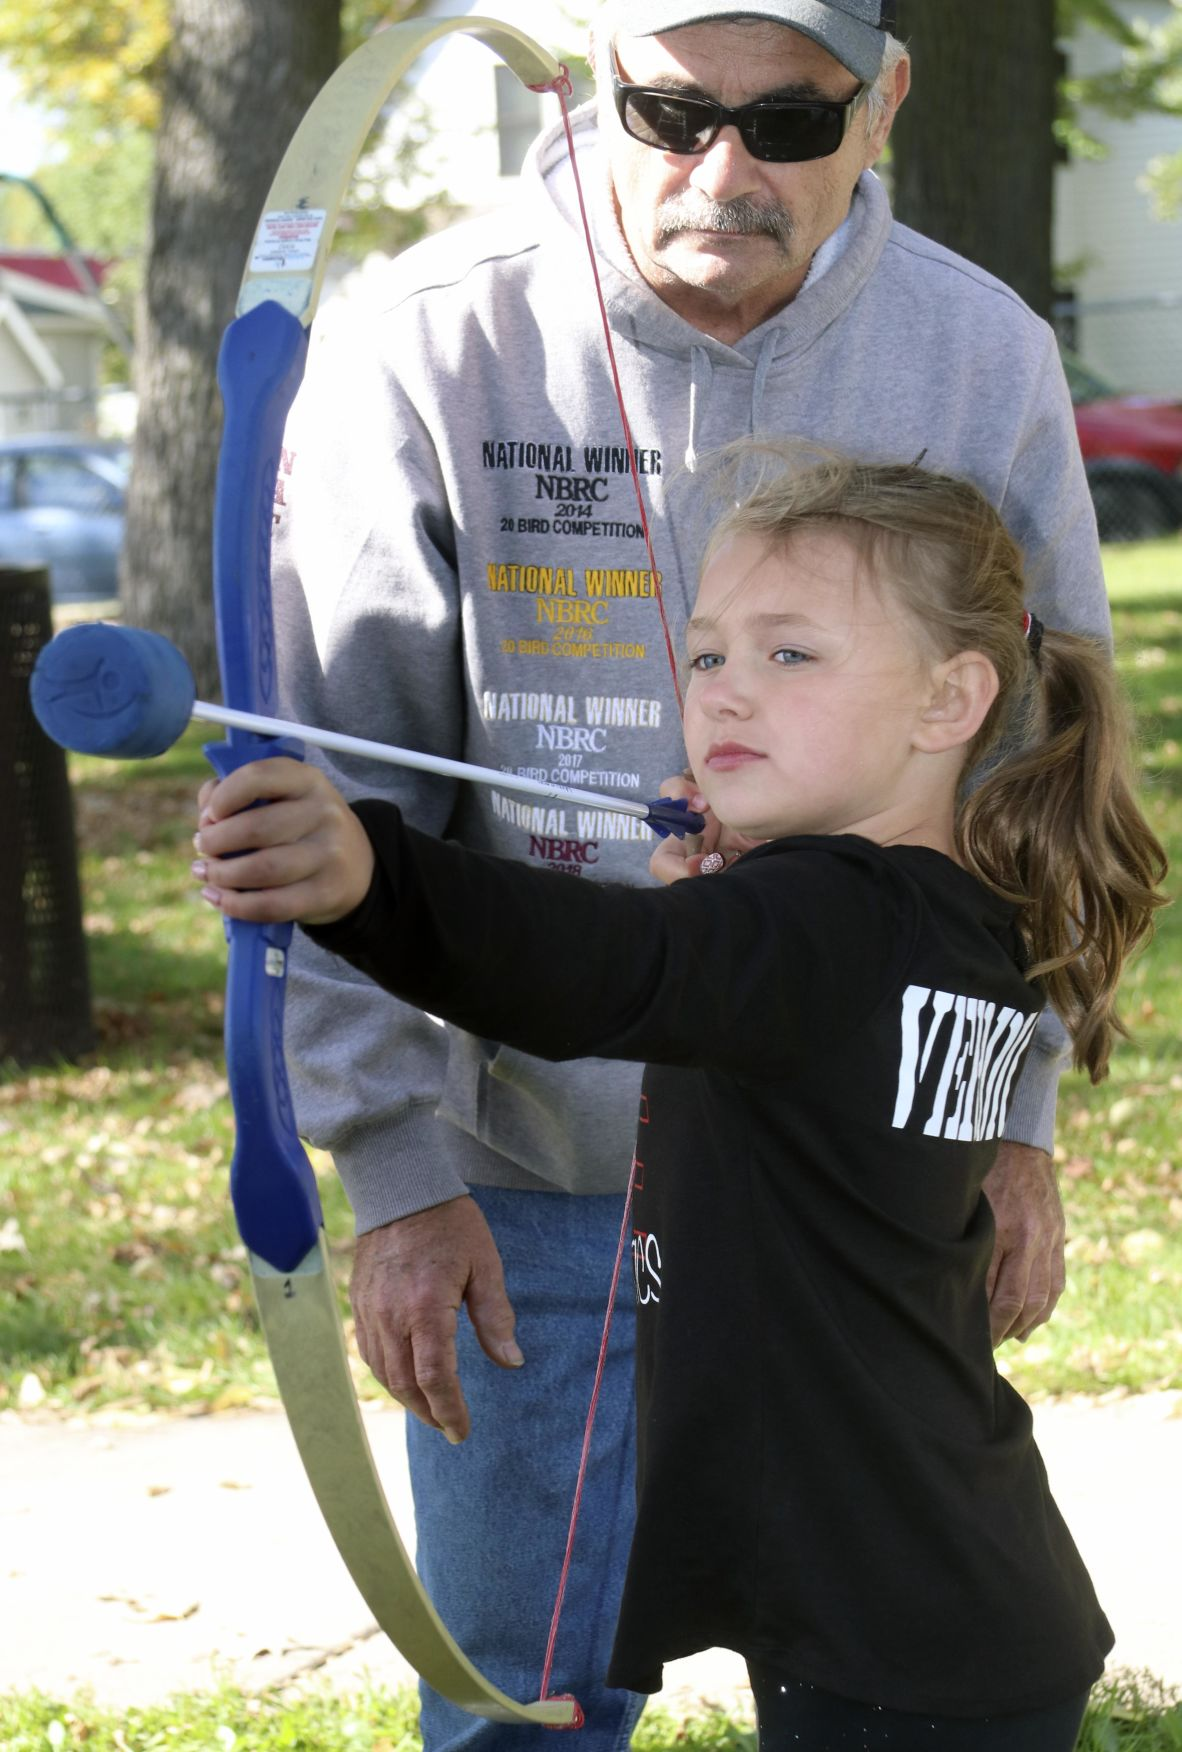 Large crowds  migrate to annual Fall Festival